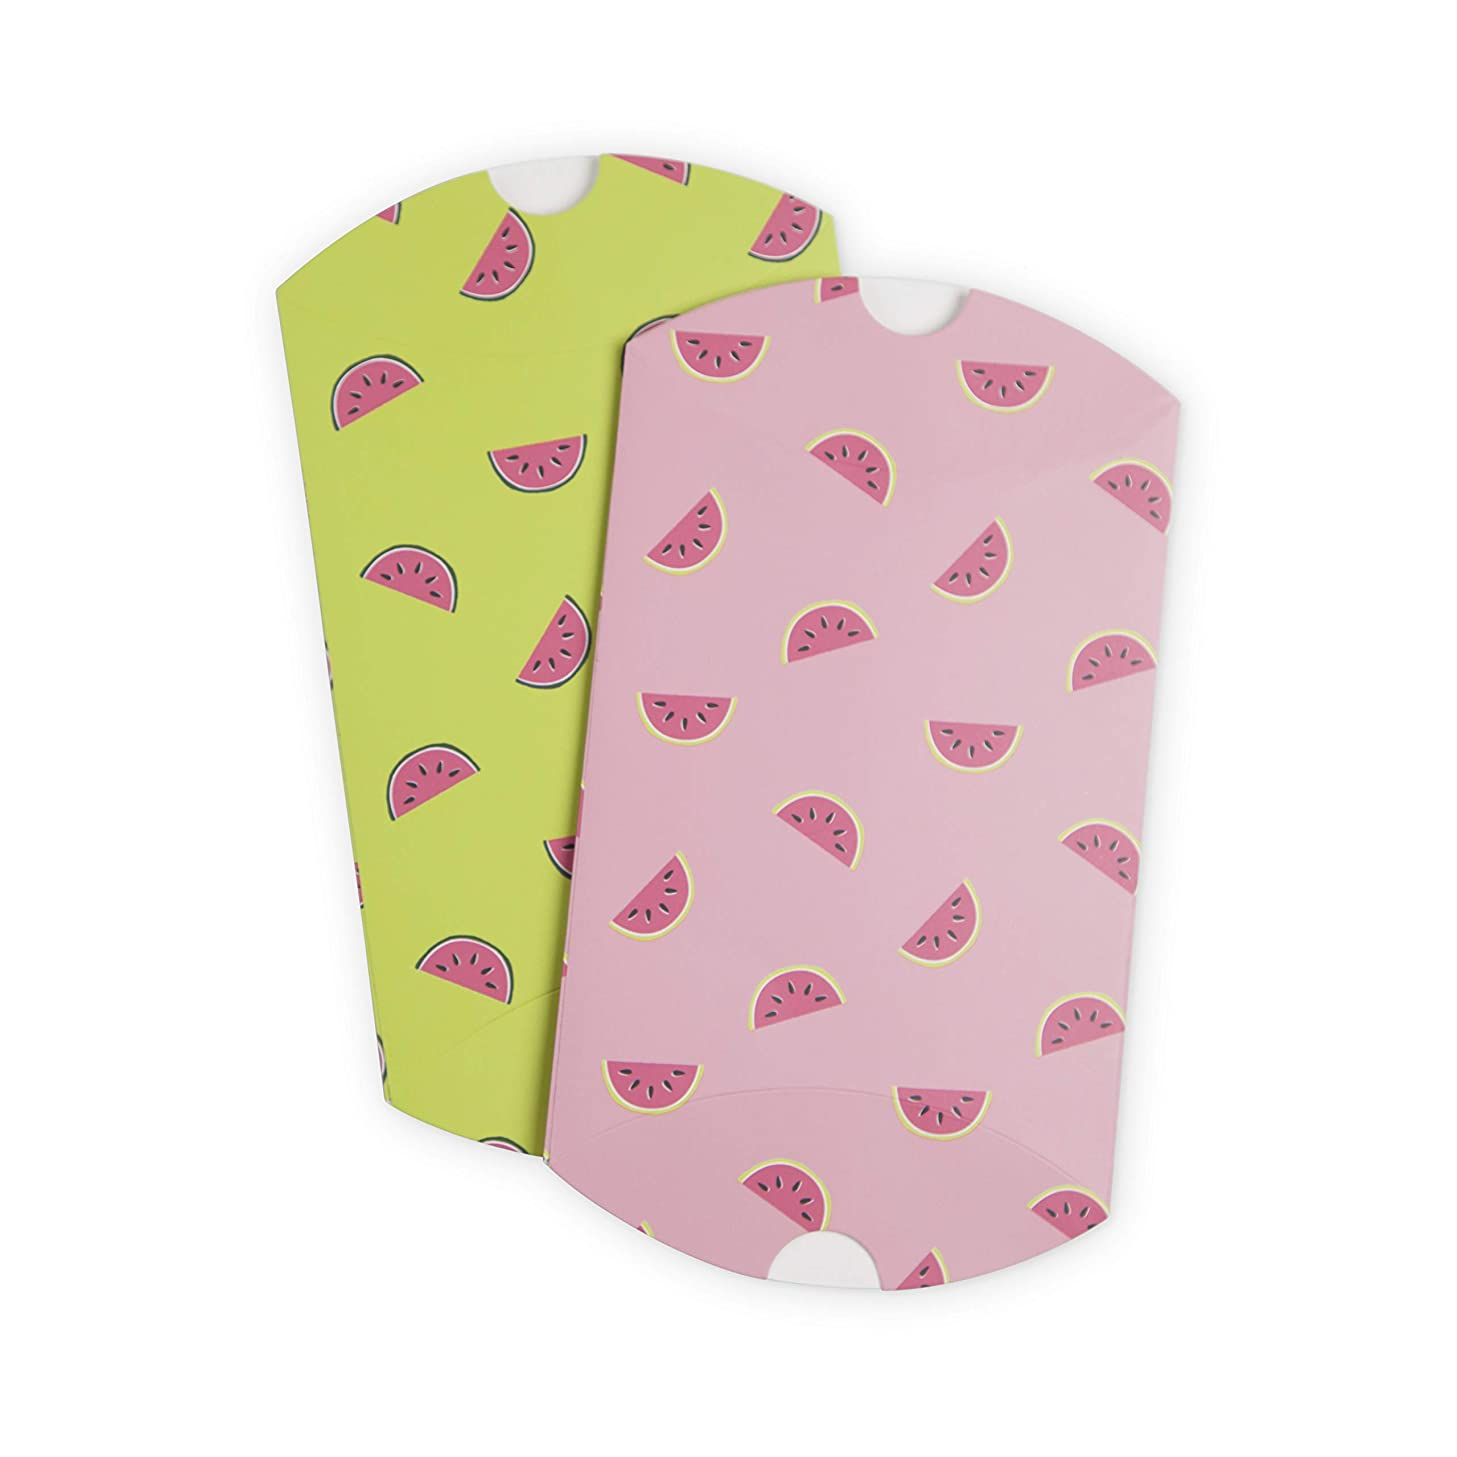 Cakewalk 6554 Assorted Watermelon Boxes Treat Bags, Multicolor